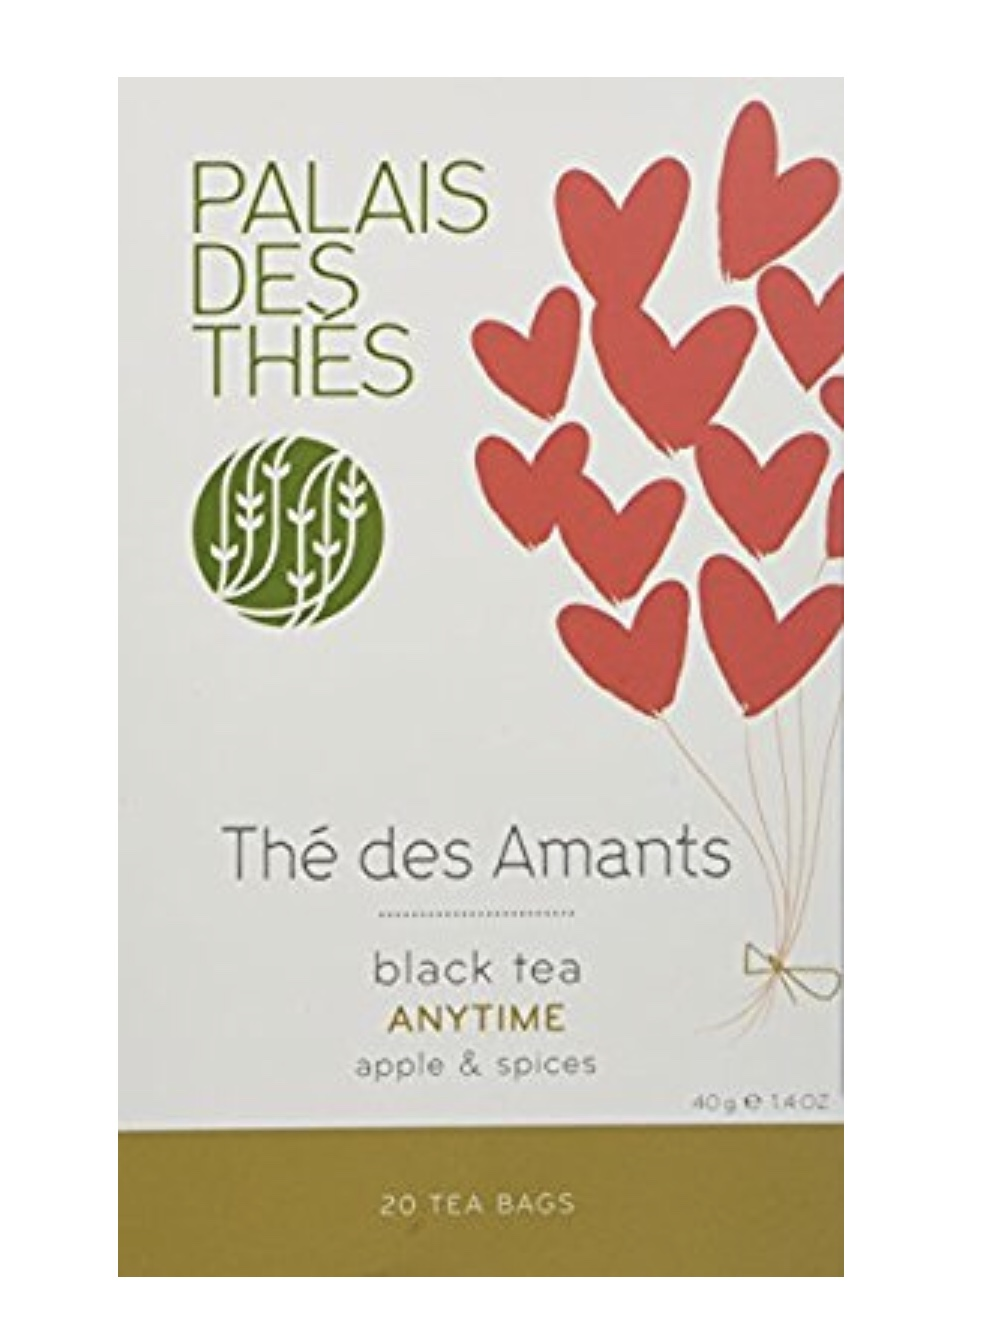 Palais Des Thes, The des Amants, Anytime Black Tea, Apple and Spices